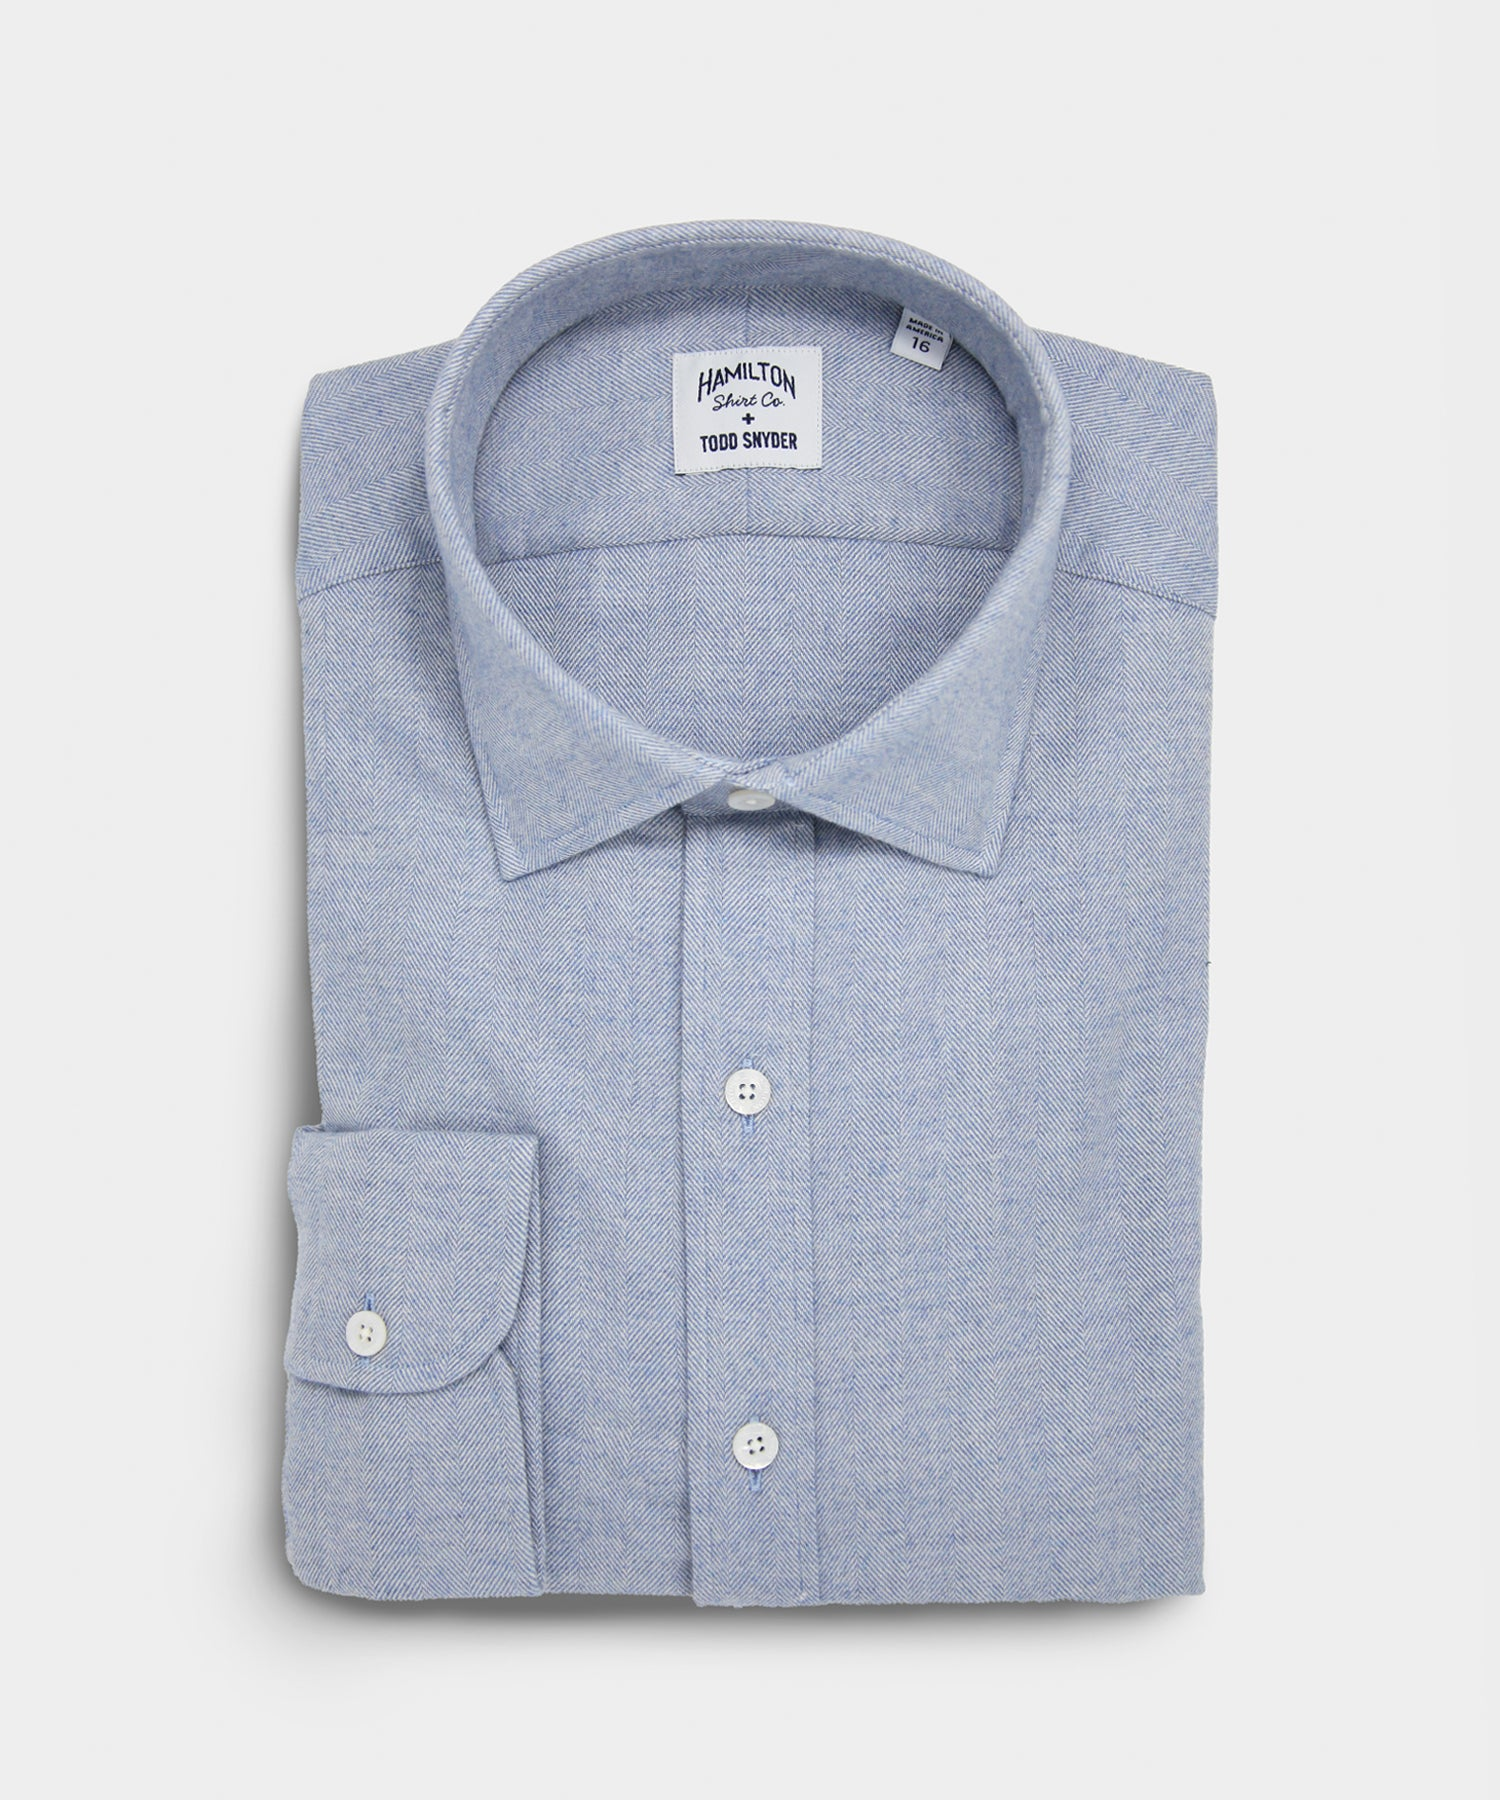 Made in the USA Hamilton + Todd Snyder Light Blue Herringbone Shirt